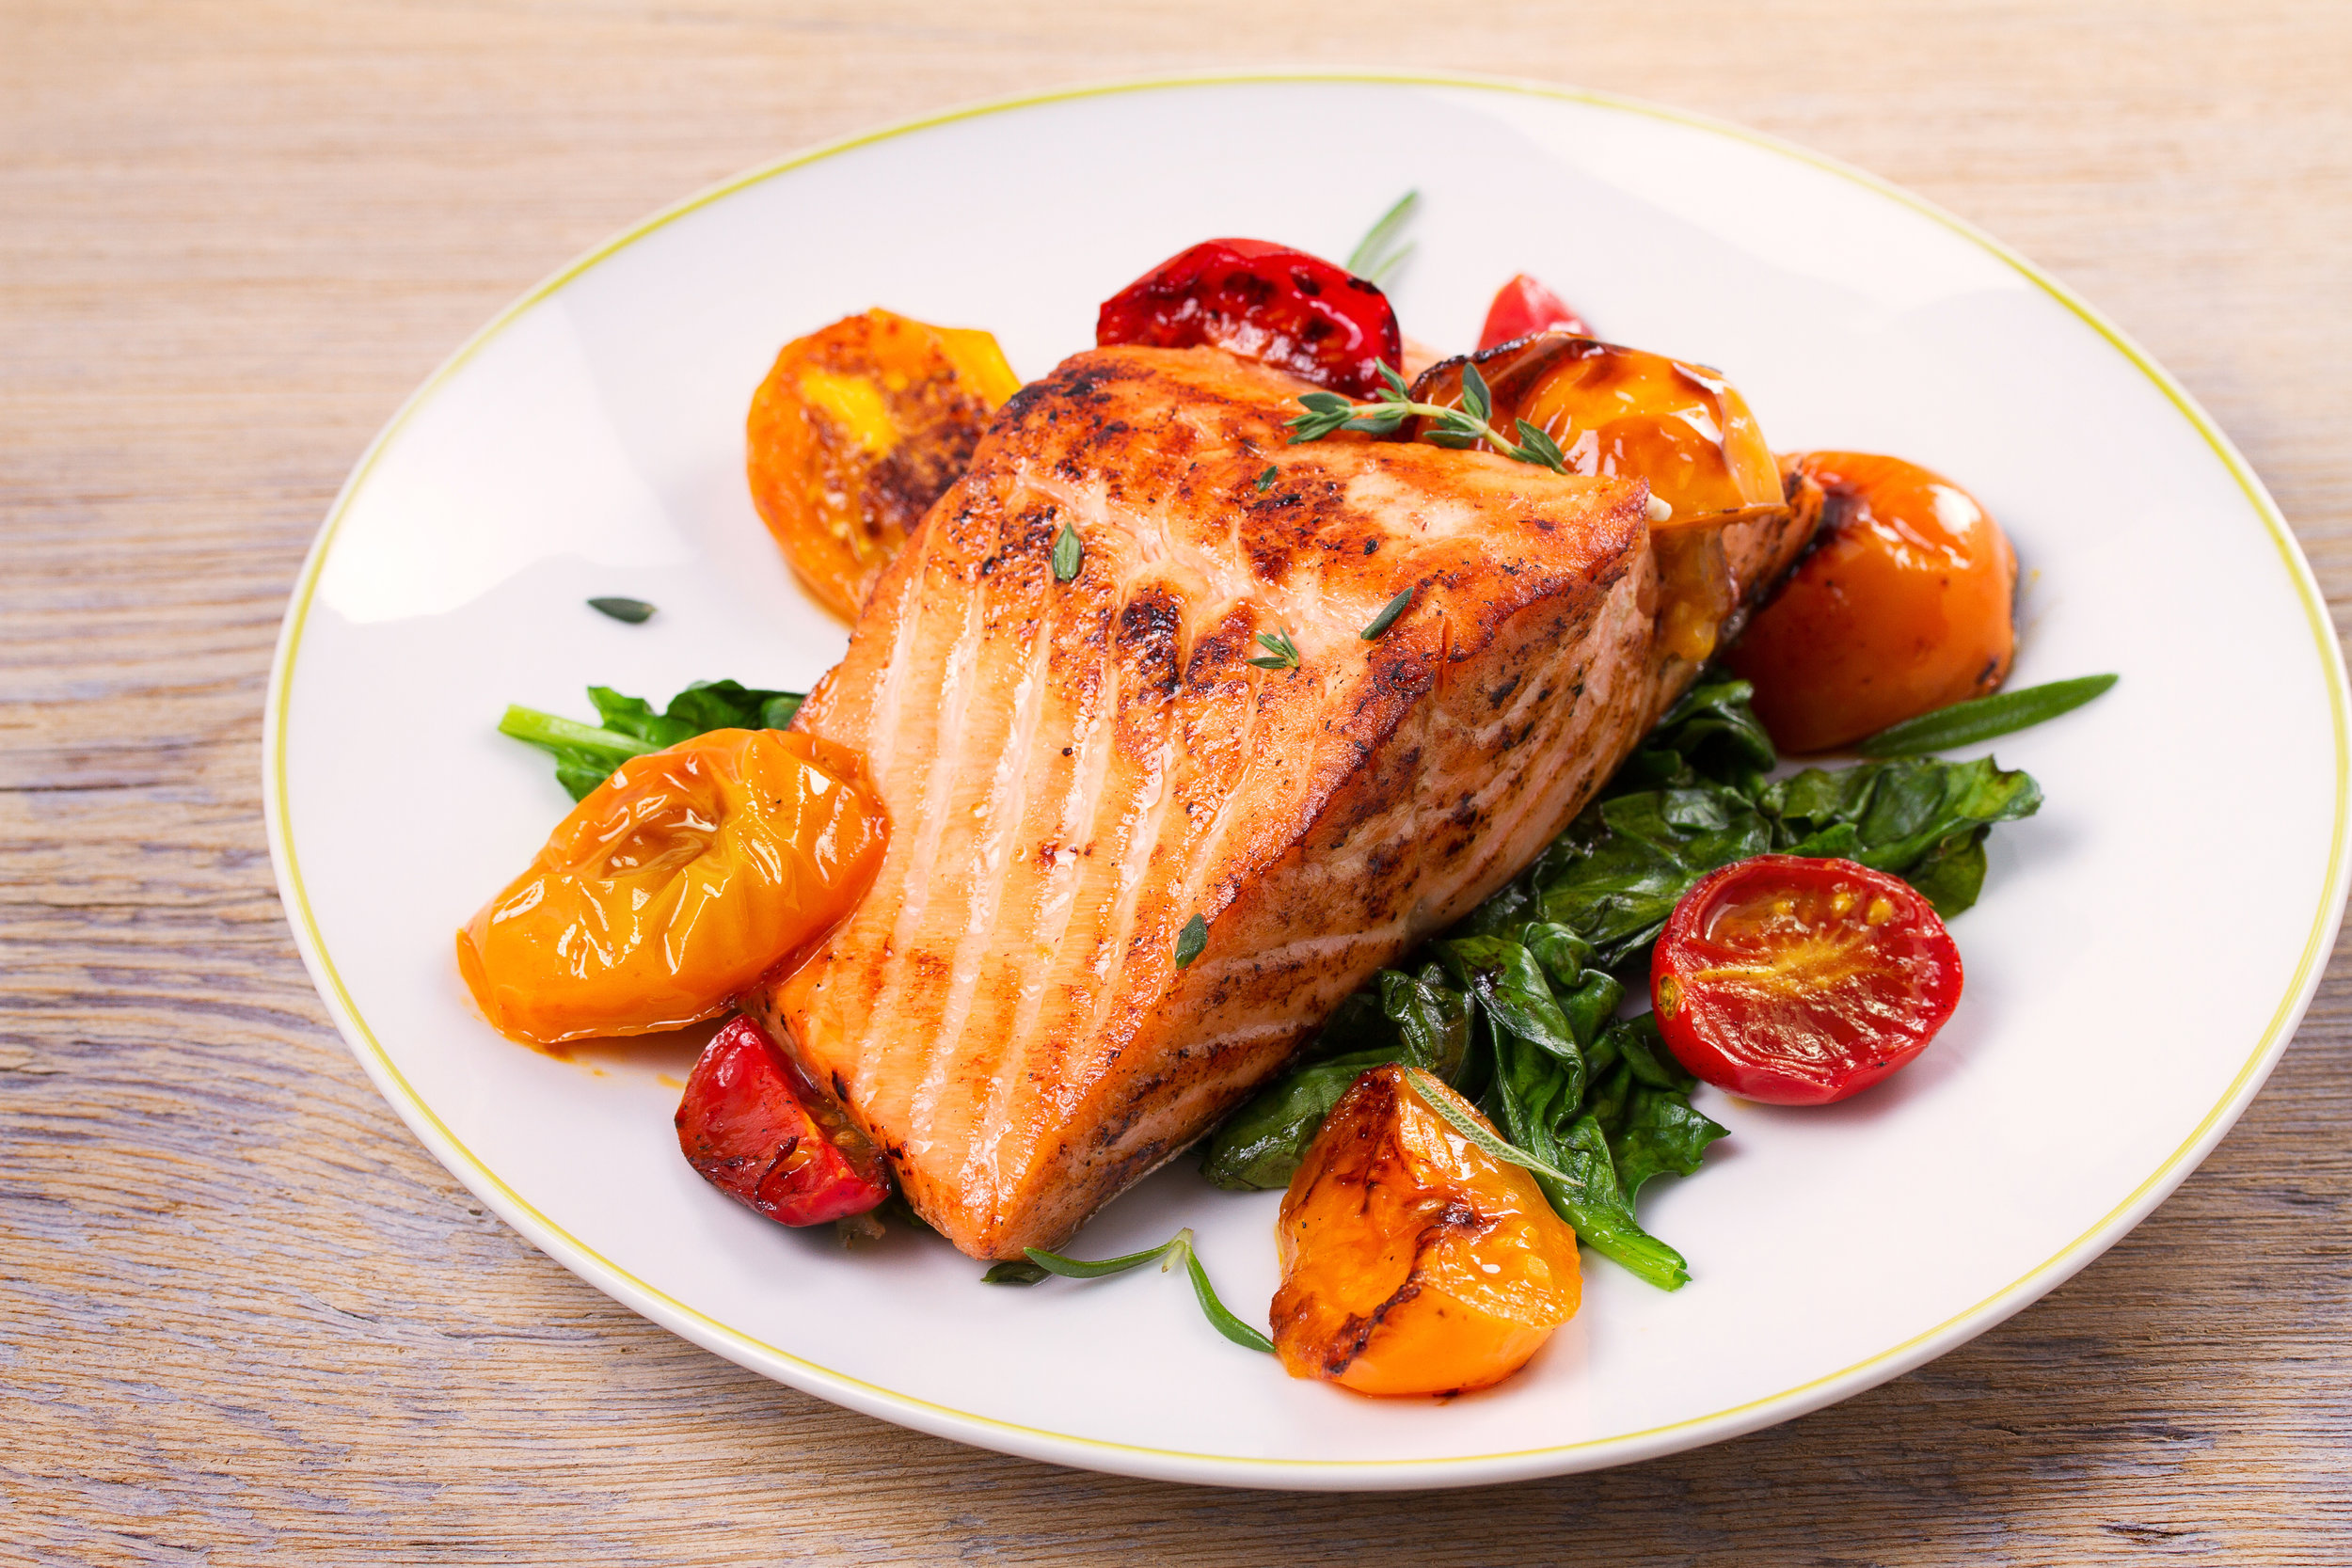 Salmon fillet with spinach and tomatoes on white plate on rustic wooden background.jpeg